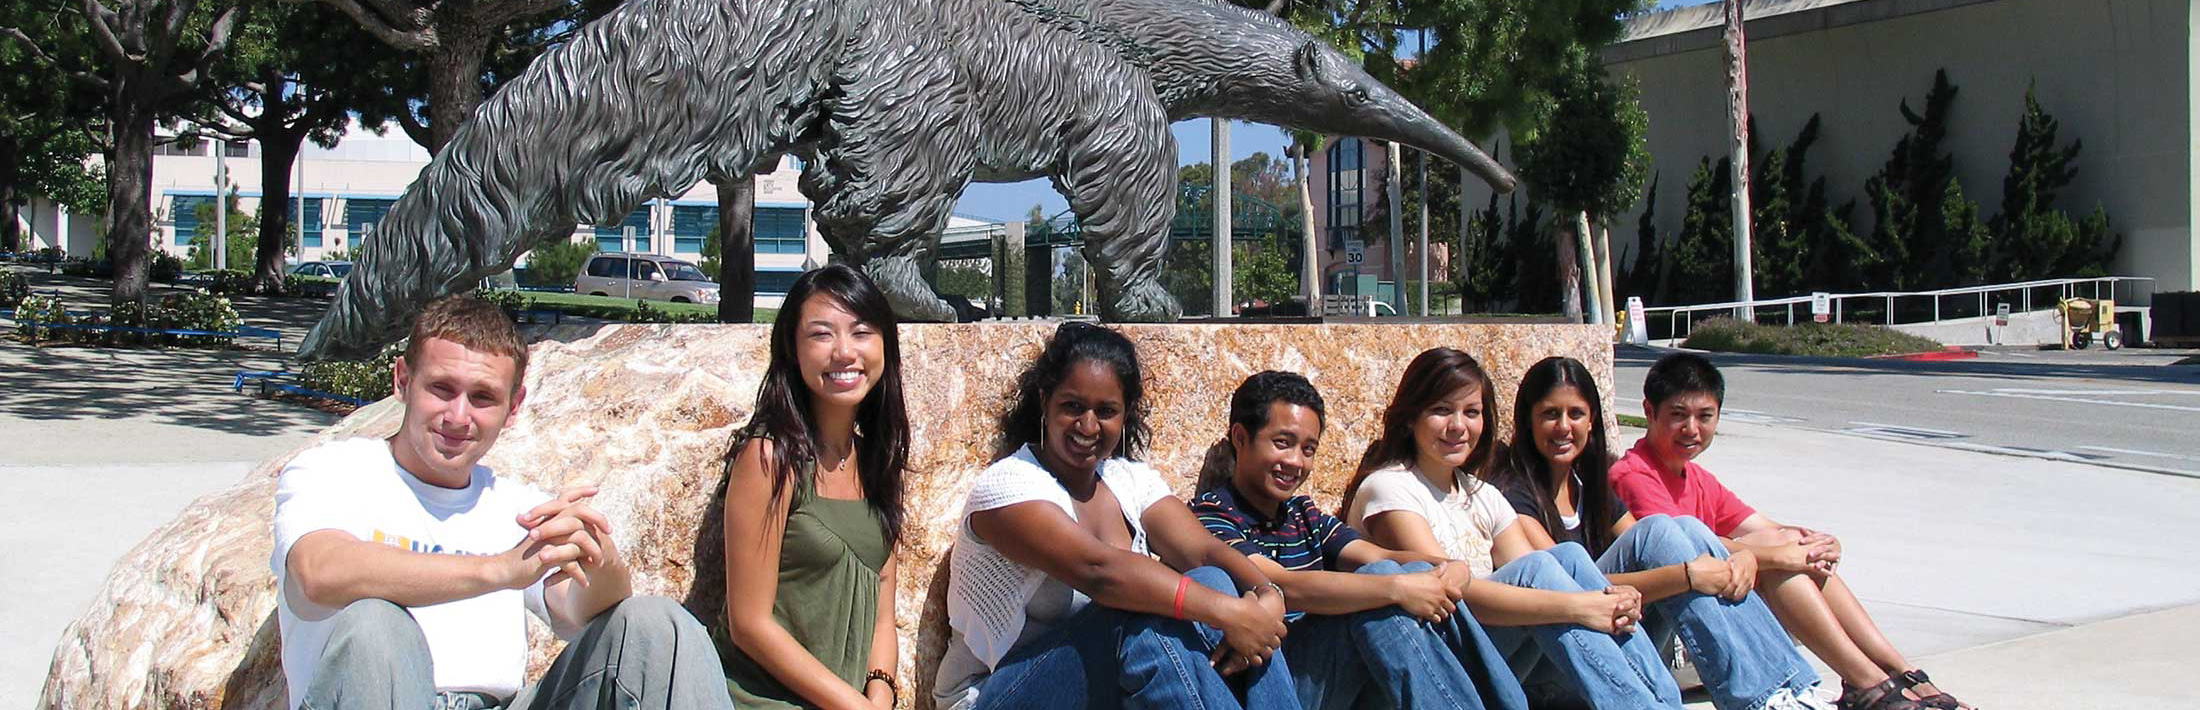 Group of international students in front of the UC Irvine Anteater statue